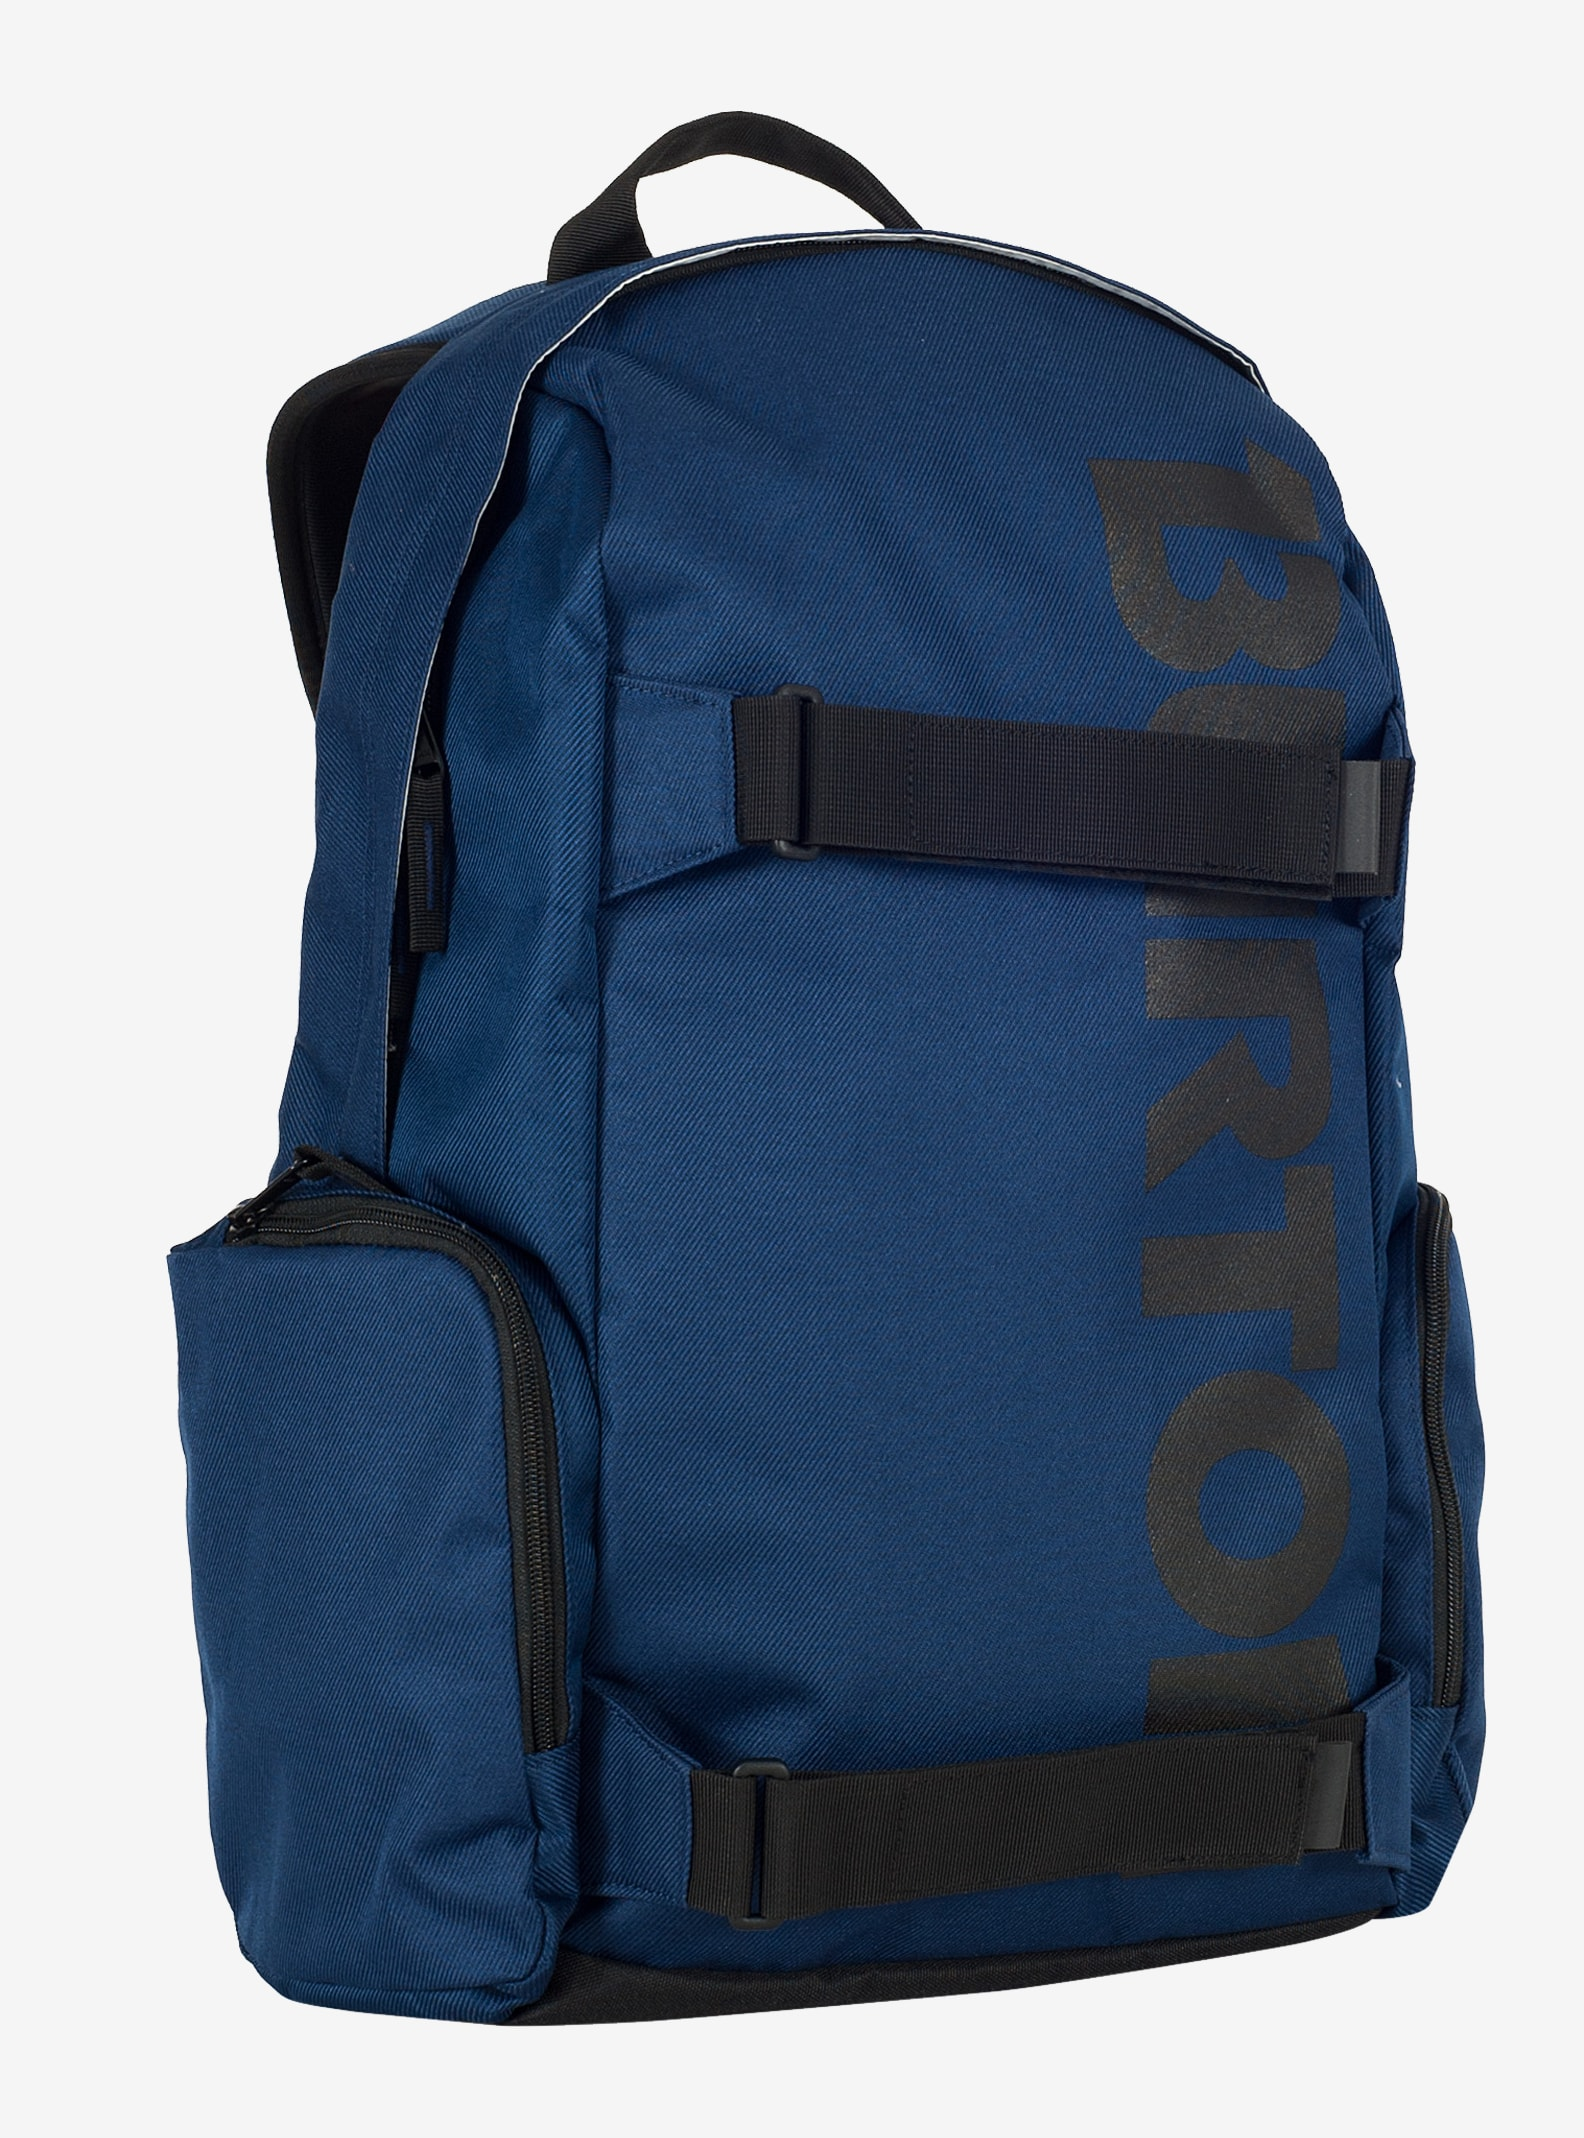 Burton Emphasis Backpack shown in Medieval Blue Twill